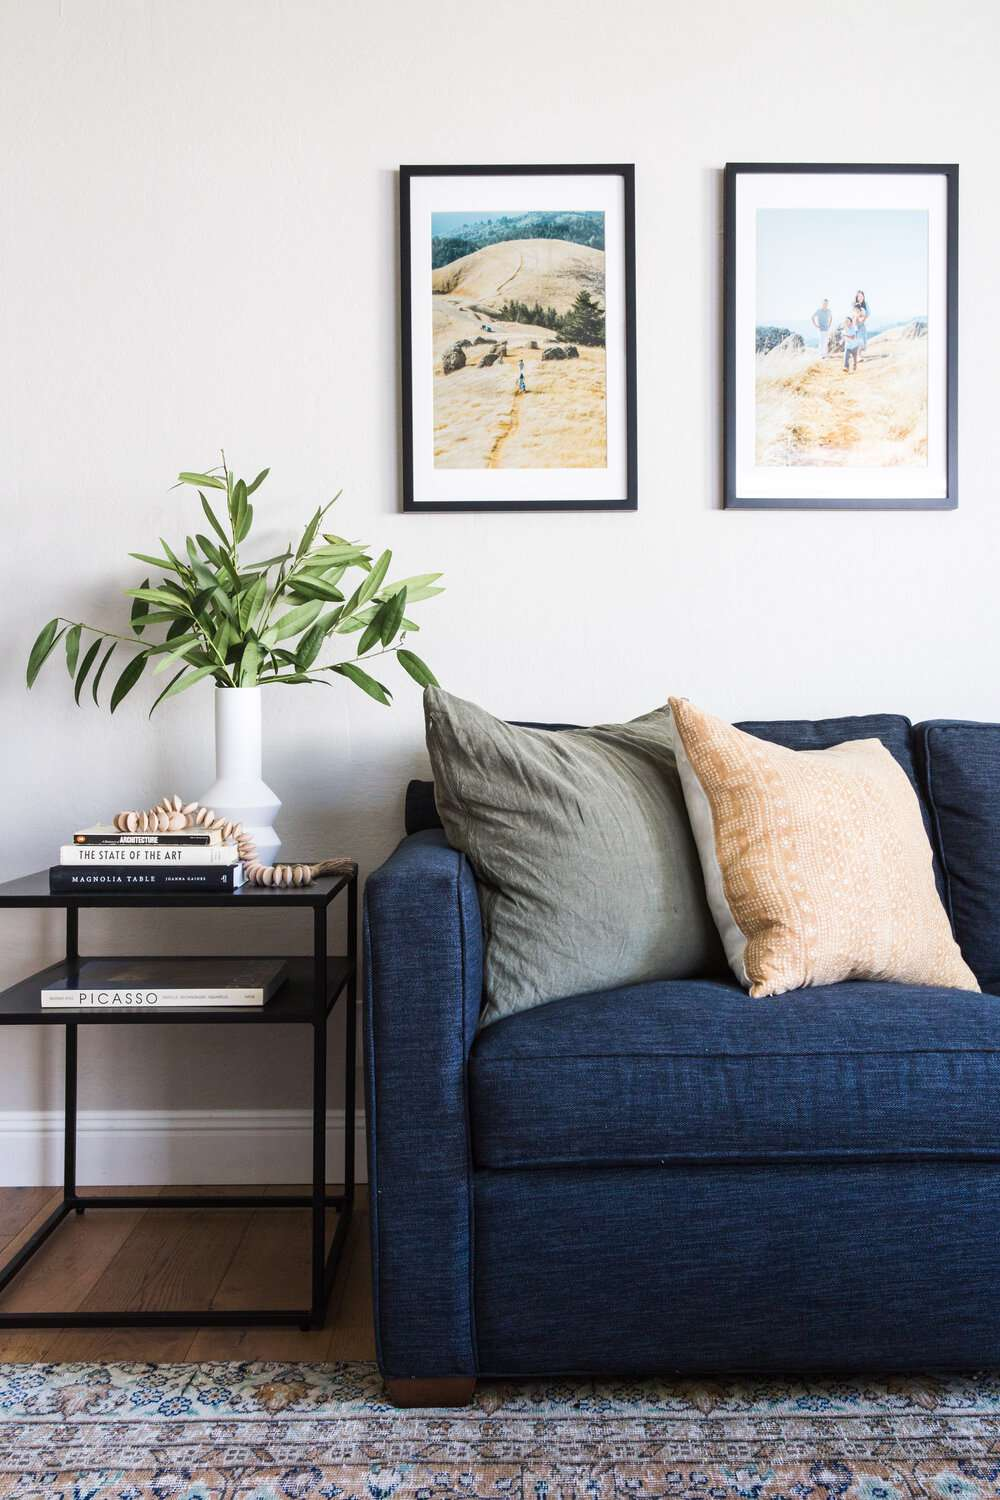 Living room with large family photos on the wall